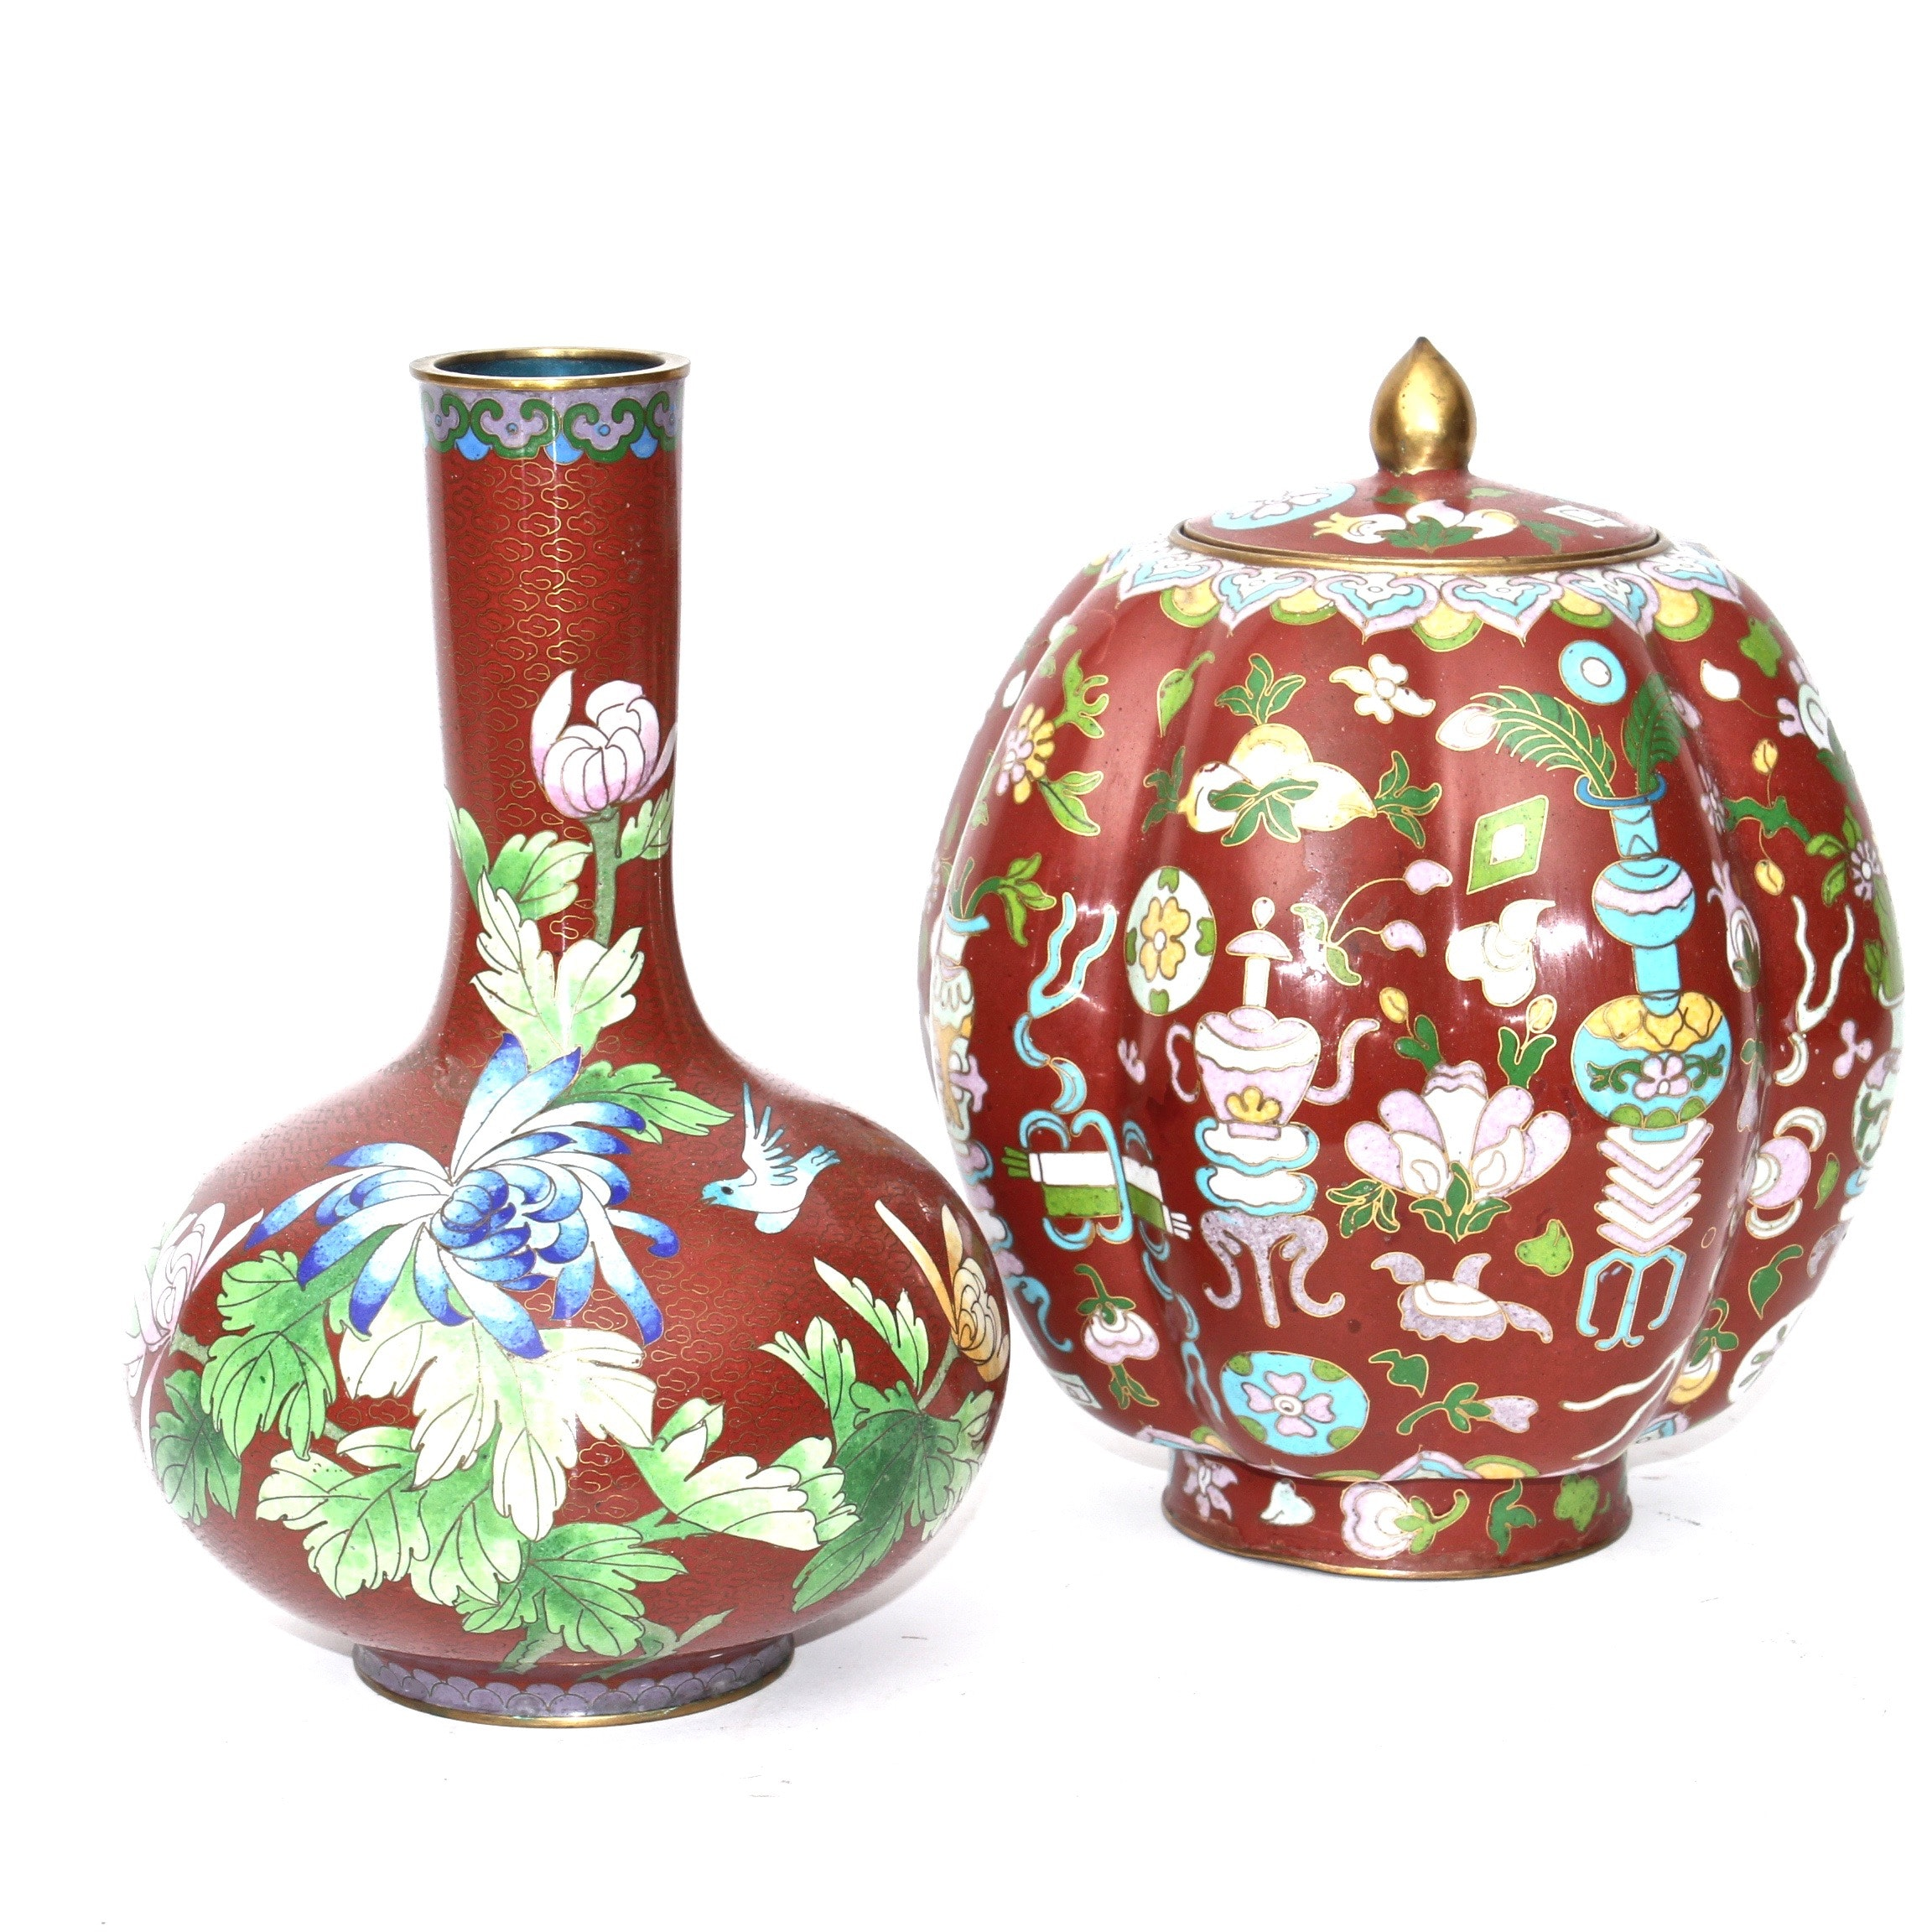 Chinese Cloisonné Vase and Urn